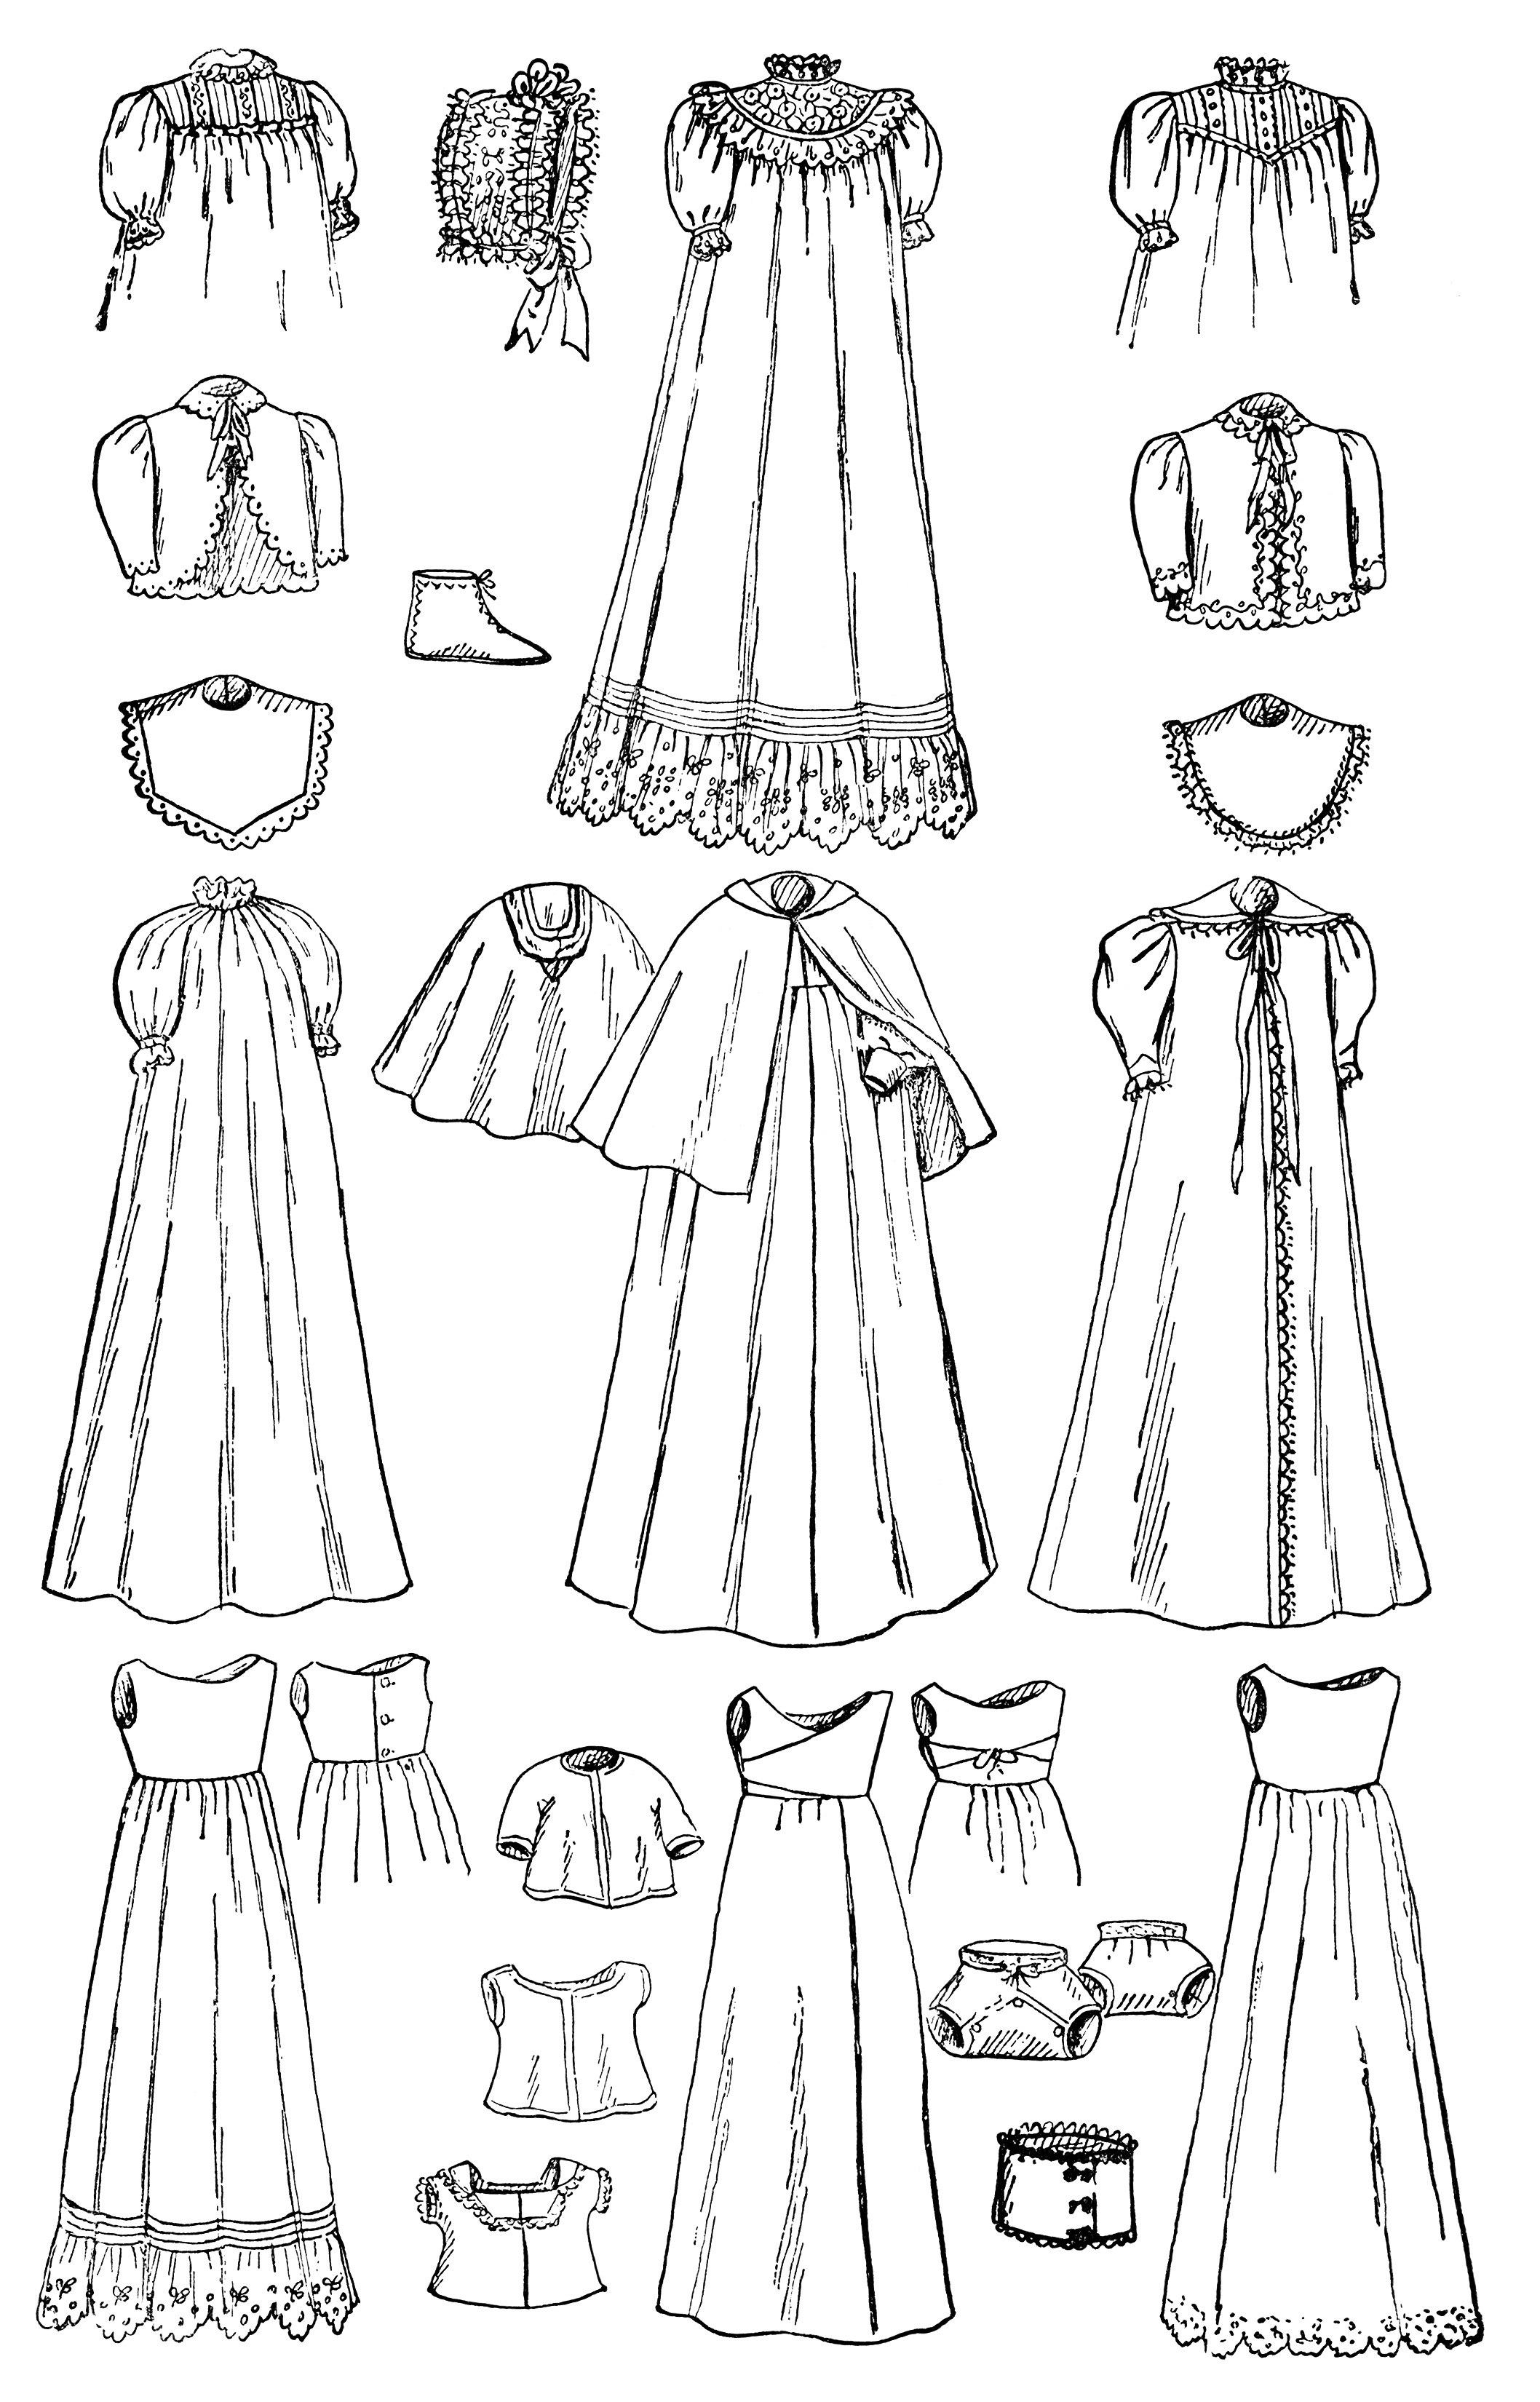 Infant S Wardrobe Free Vintage Clip Art